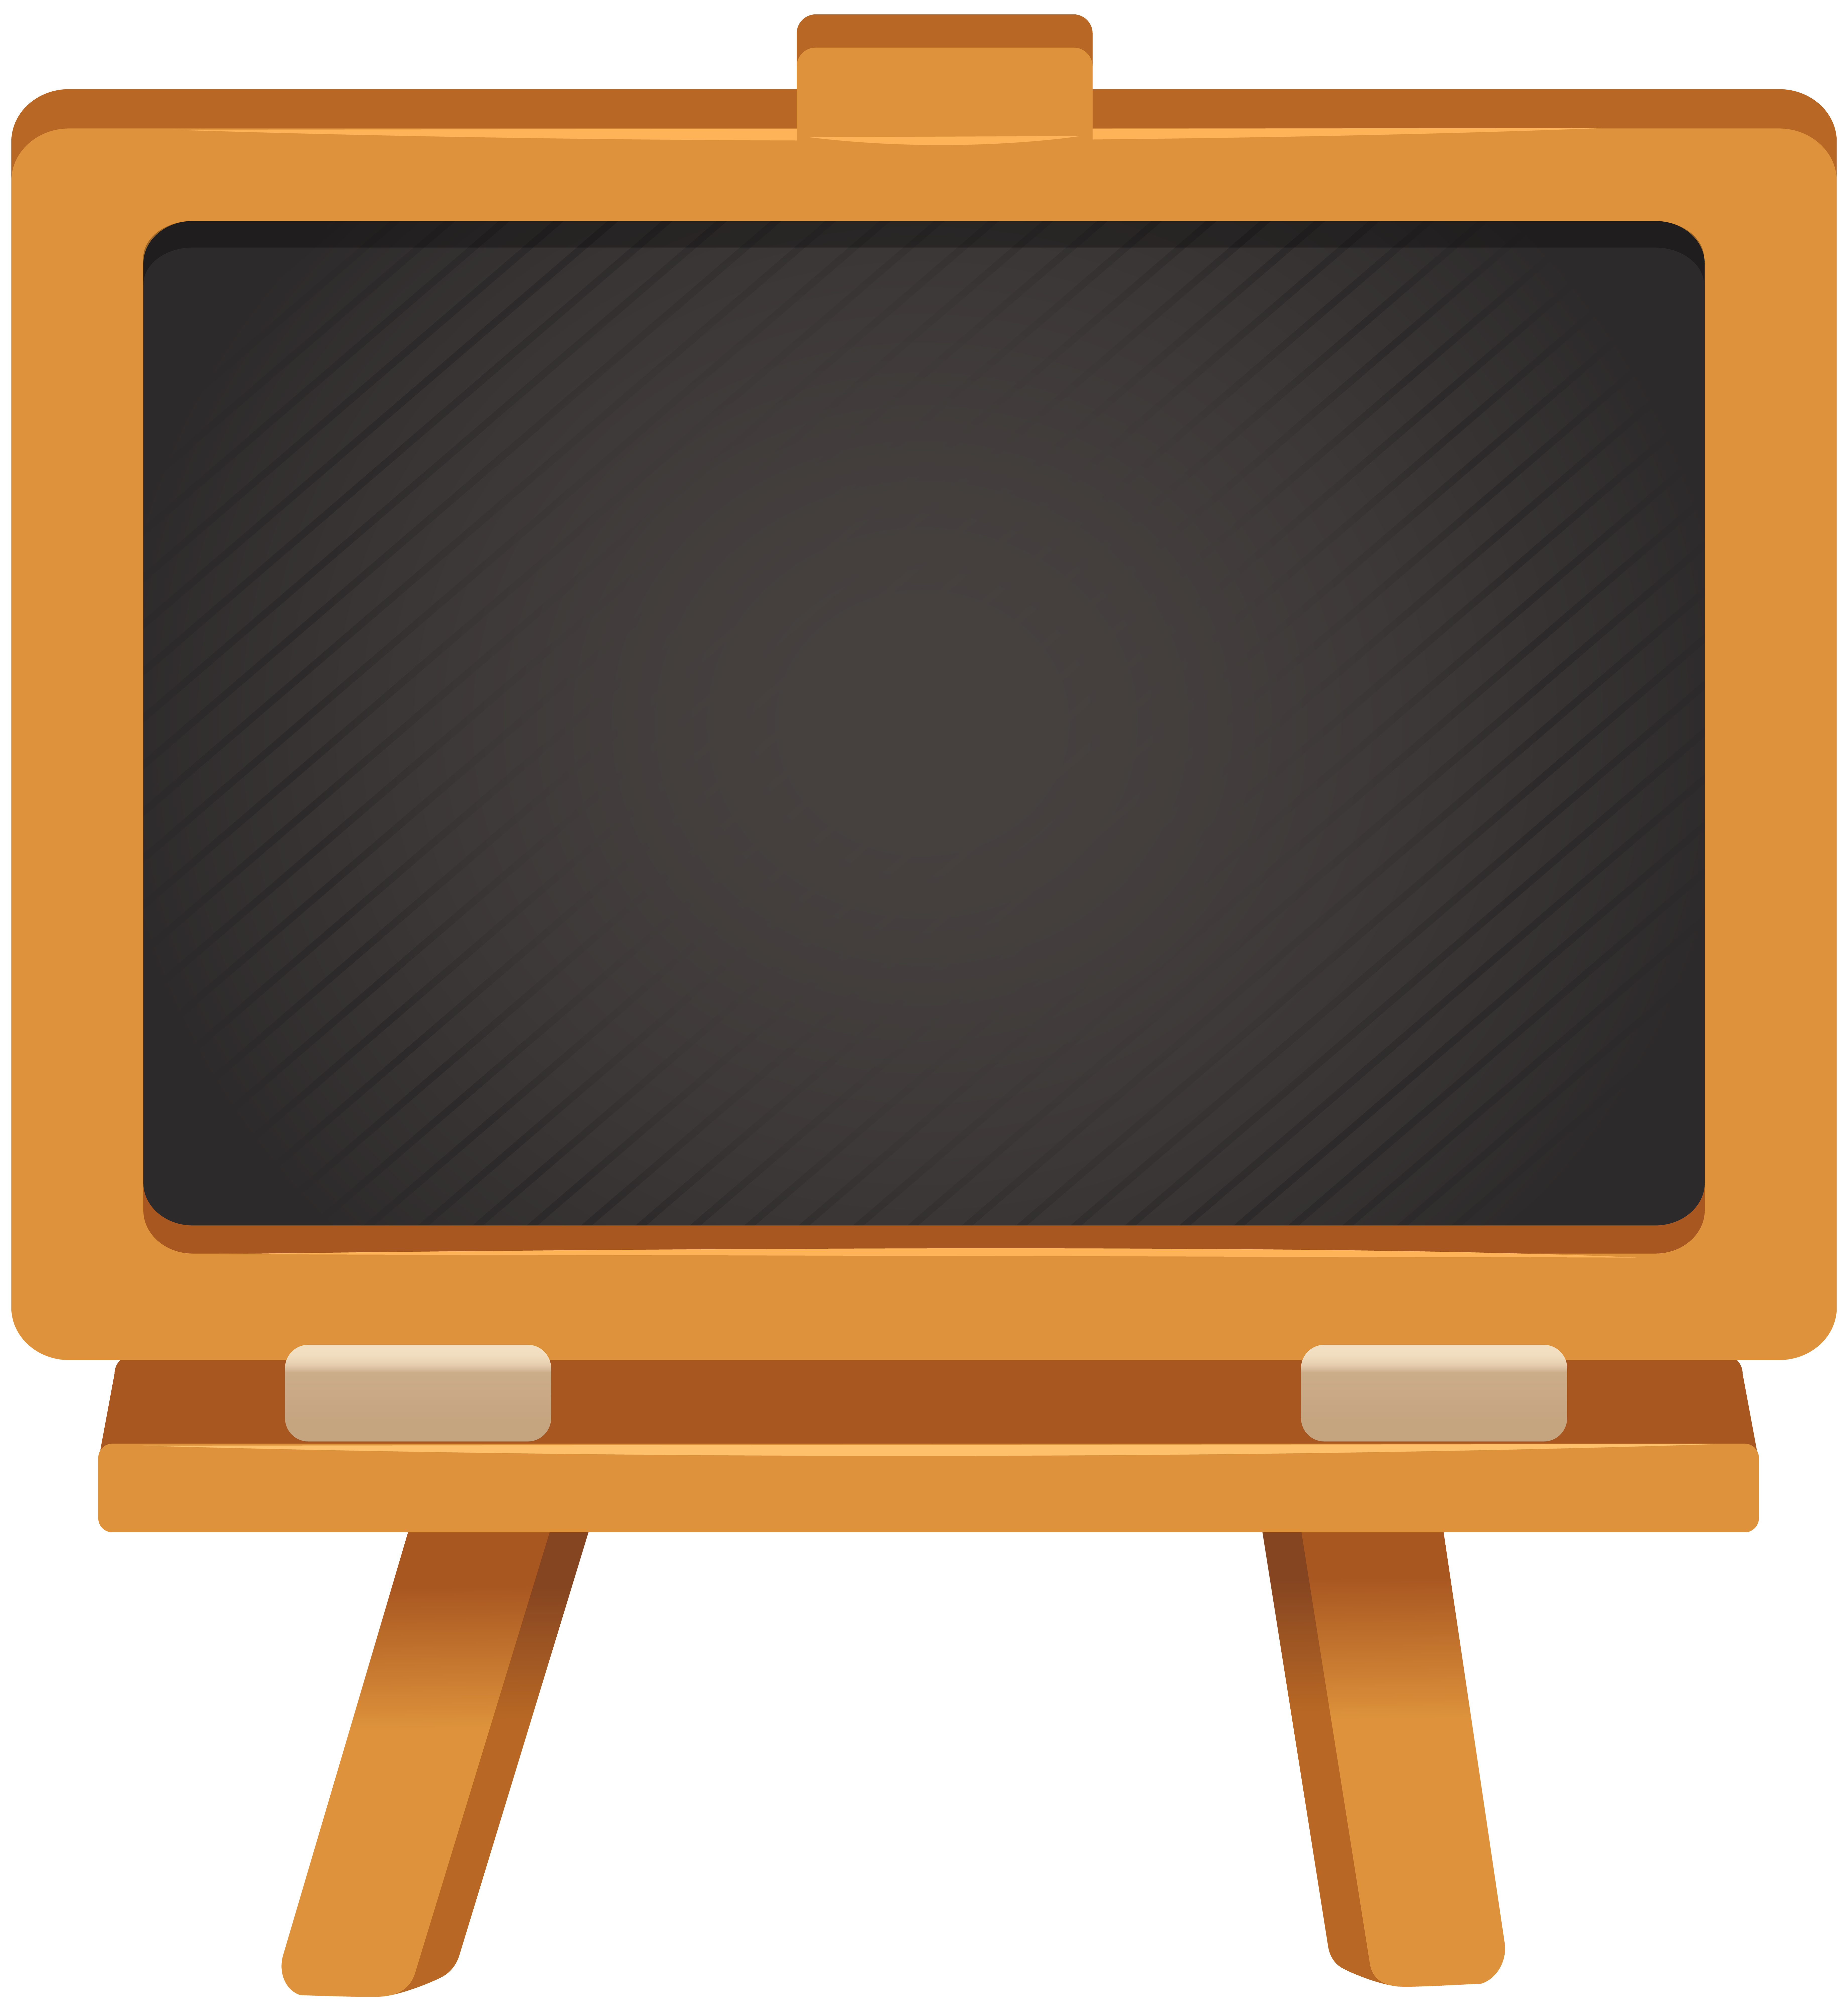 School blackboard clipart banner free Blackboard PNG Clip Art Image | Gallery Yopriceville - High-Quality ... banner free